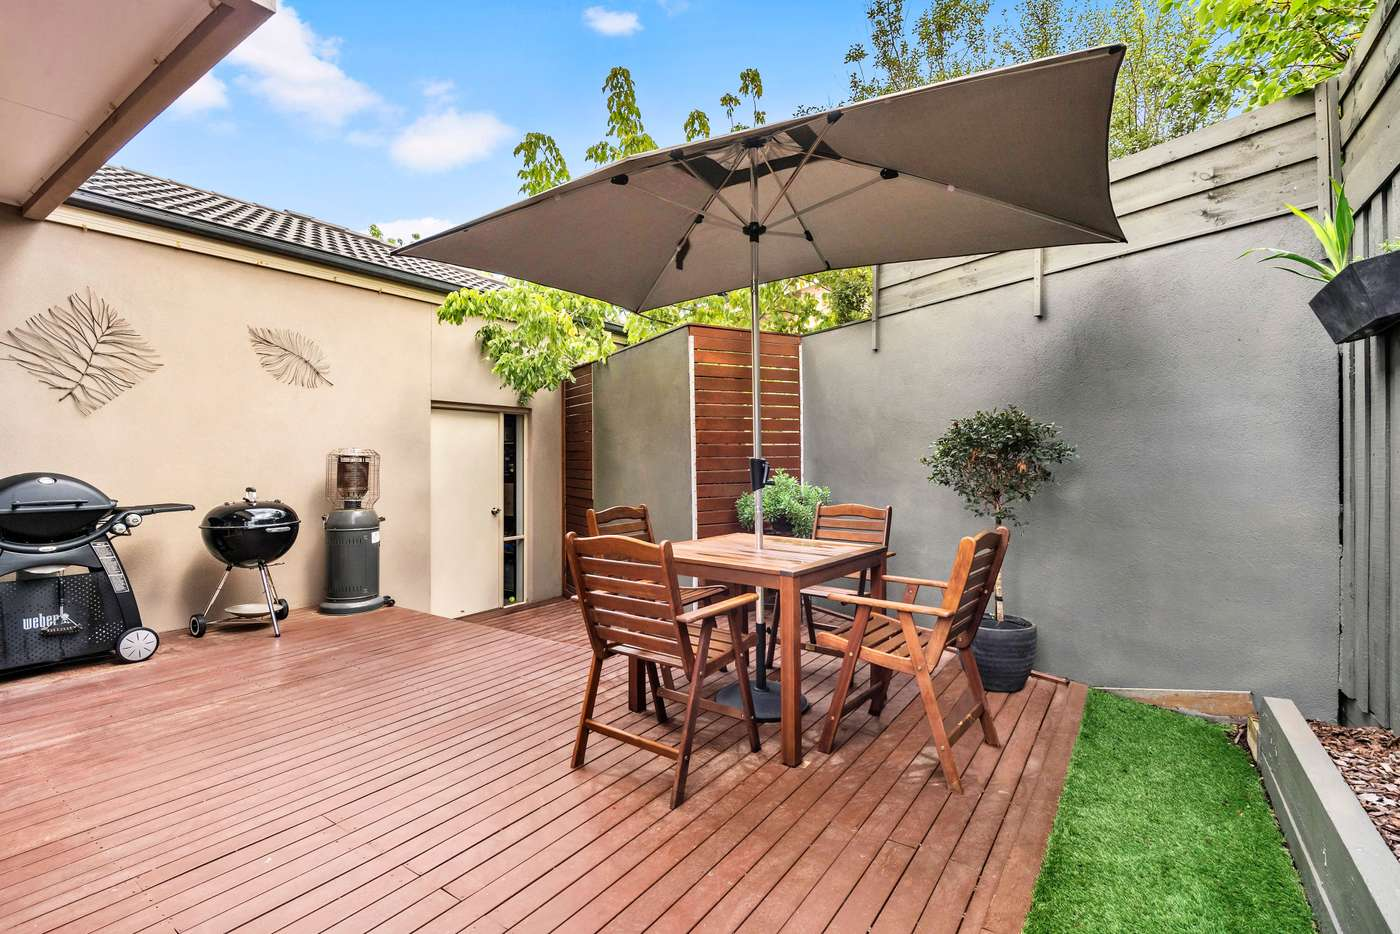 Seventh view of Homely house listing, 7A Ithaca Road, Frankston South VIC 3199